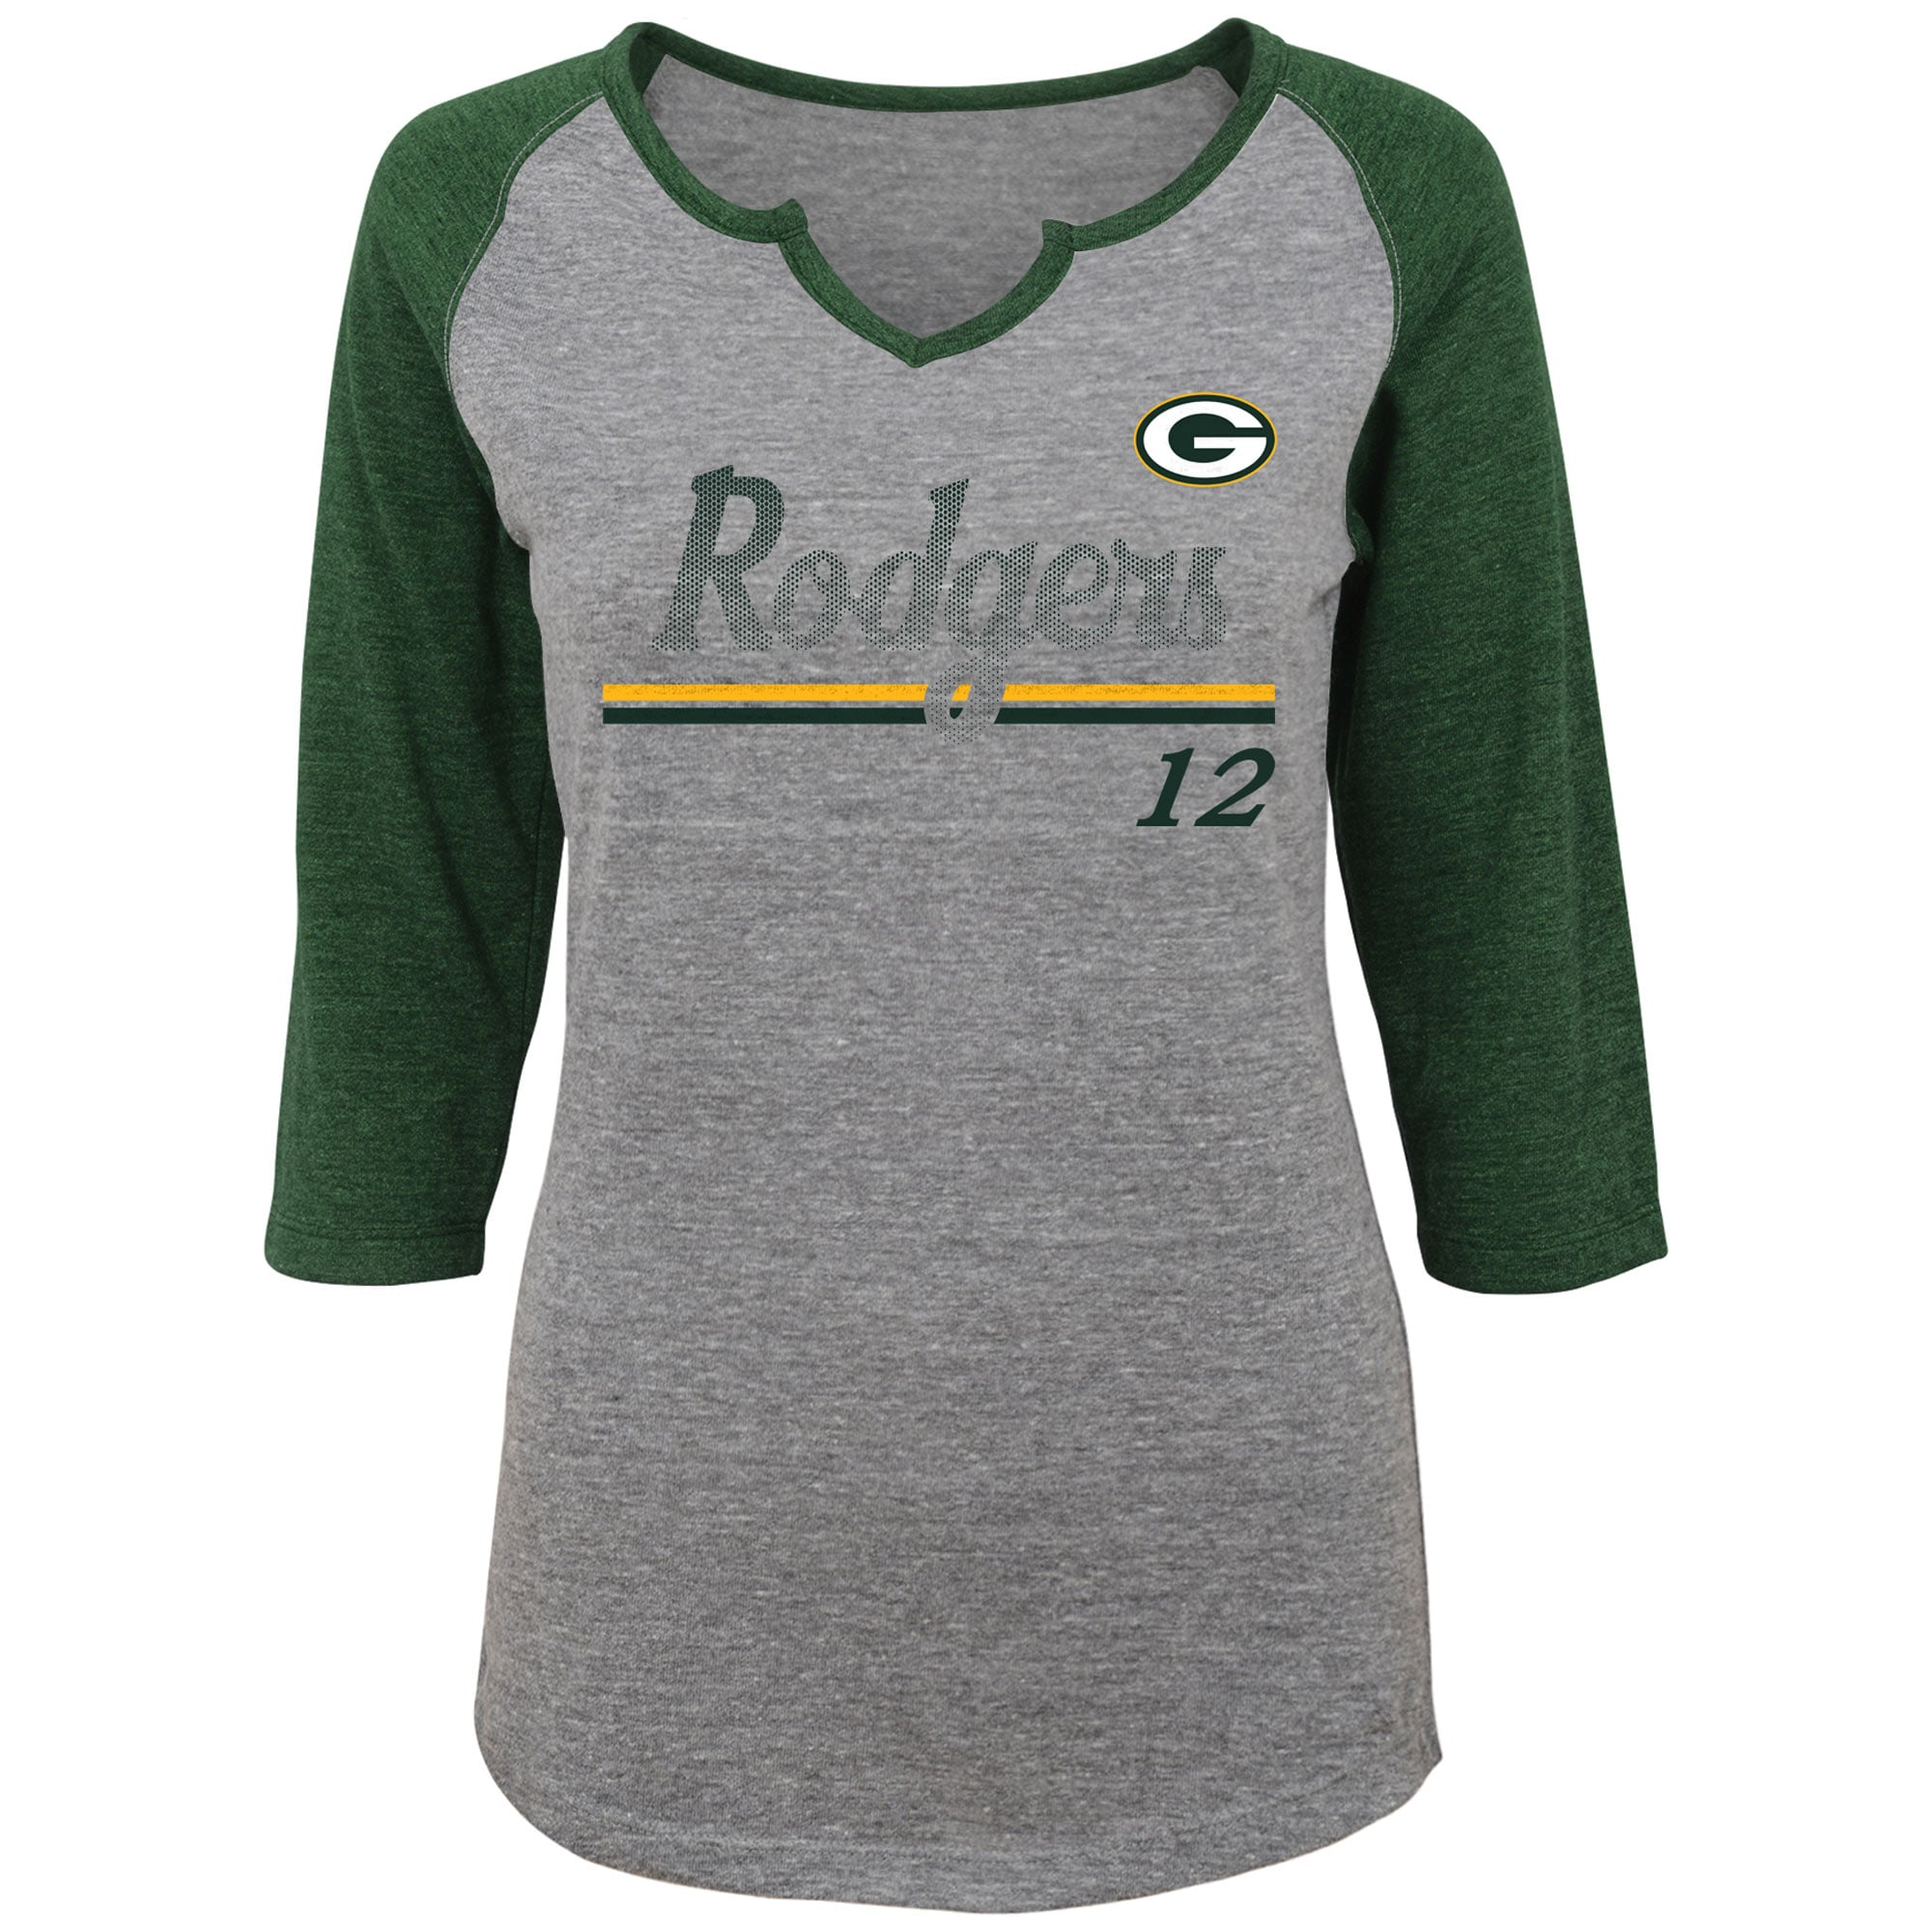 Aaron Rodgers Green Bay Packers Women's Juniors Over the Line Player Name & Number Tri-Blend 3/4-Sleeve V-Notch T-Shirt - Heathered Gray/Green